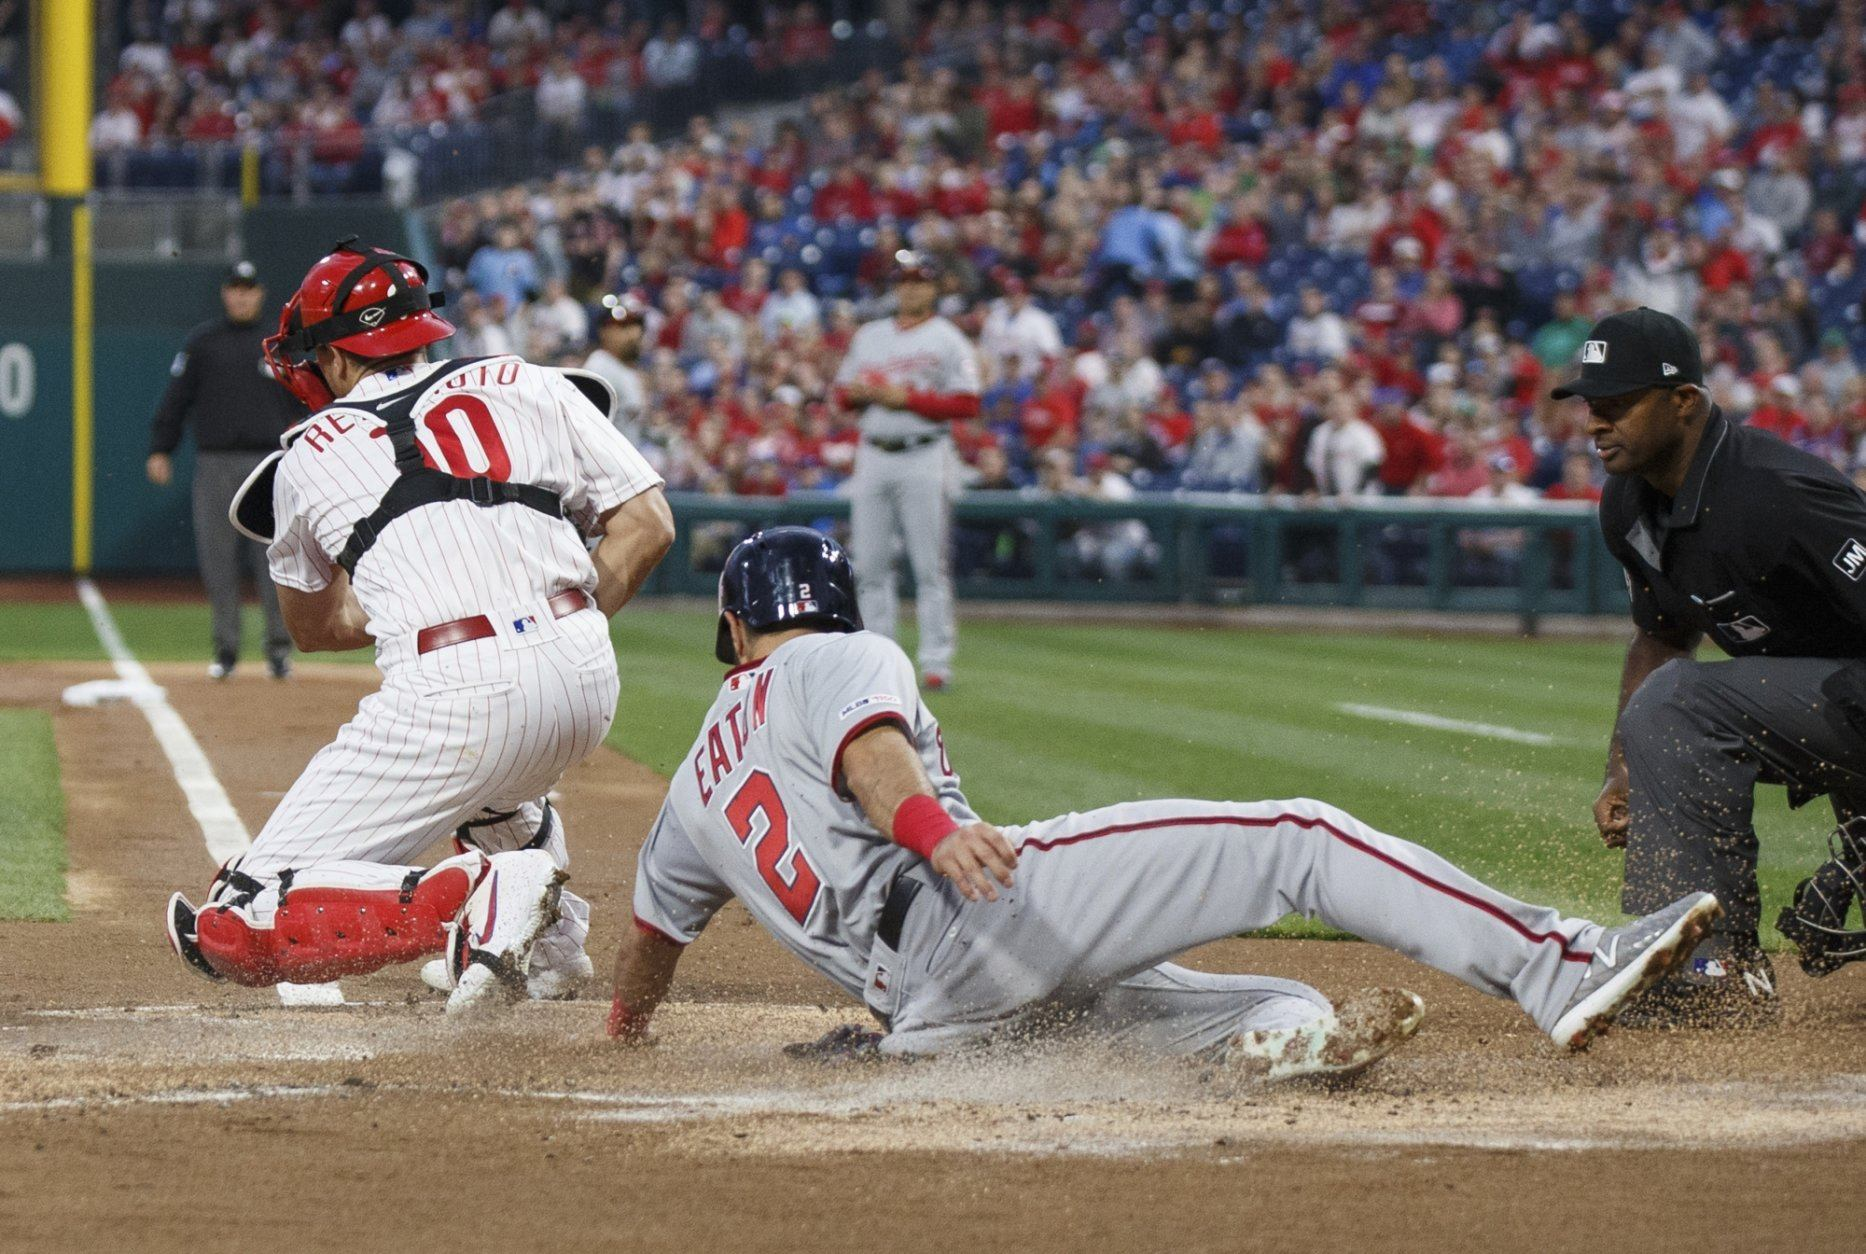 Washington Nationals' Adam Eaton scores on a sacrifice fly by Anthony Rendon as Philadelphia Phillies catcher J.T. Realmuto, left, catches the  throw during the first inning of a baseball game Tuesday, April 9, 2019, in Philadelphia. (AP Photo/Chris Szagola)